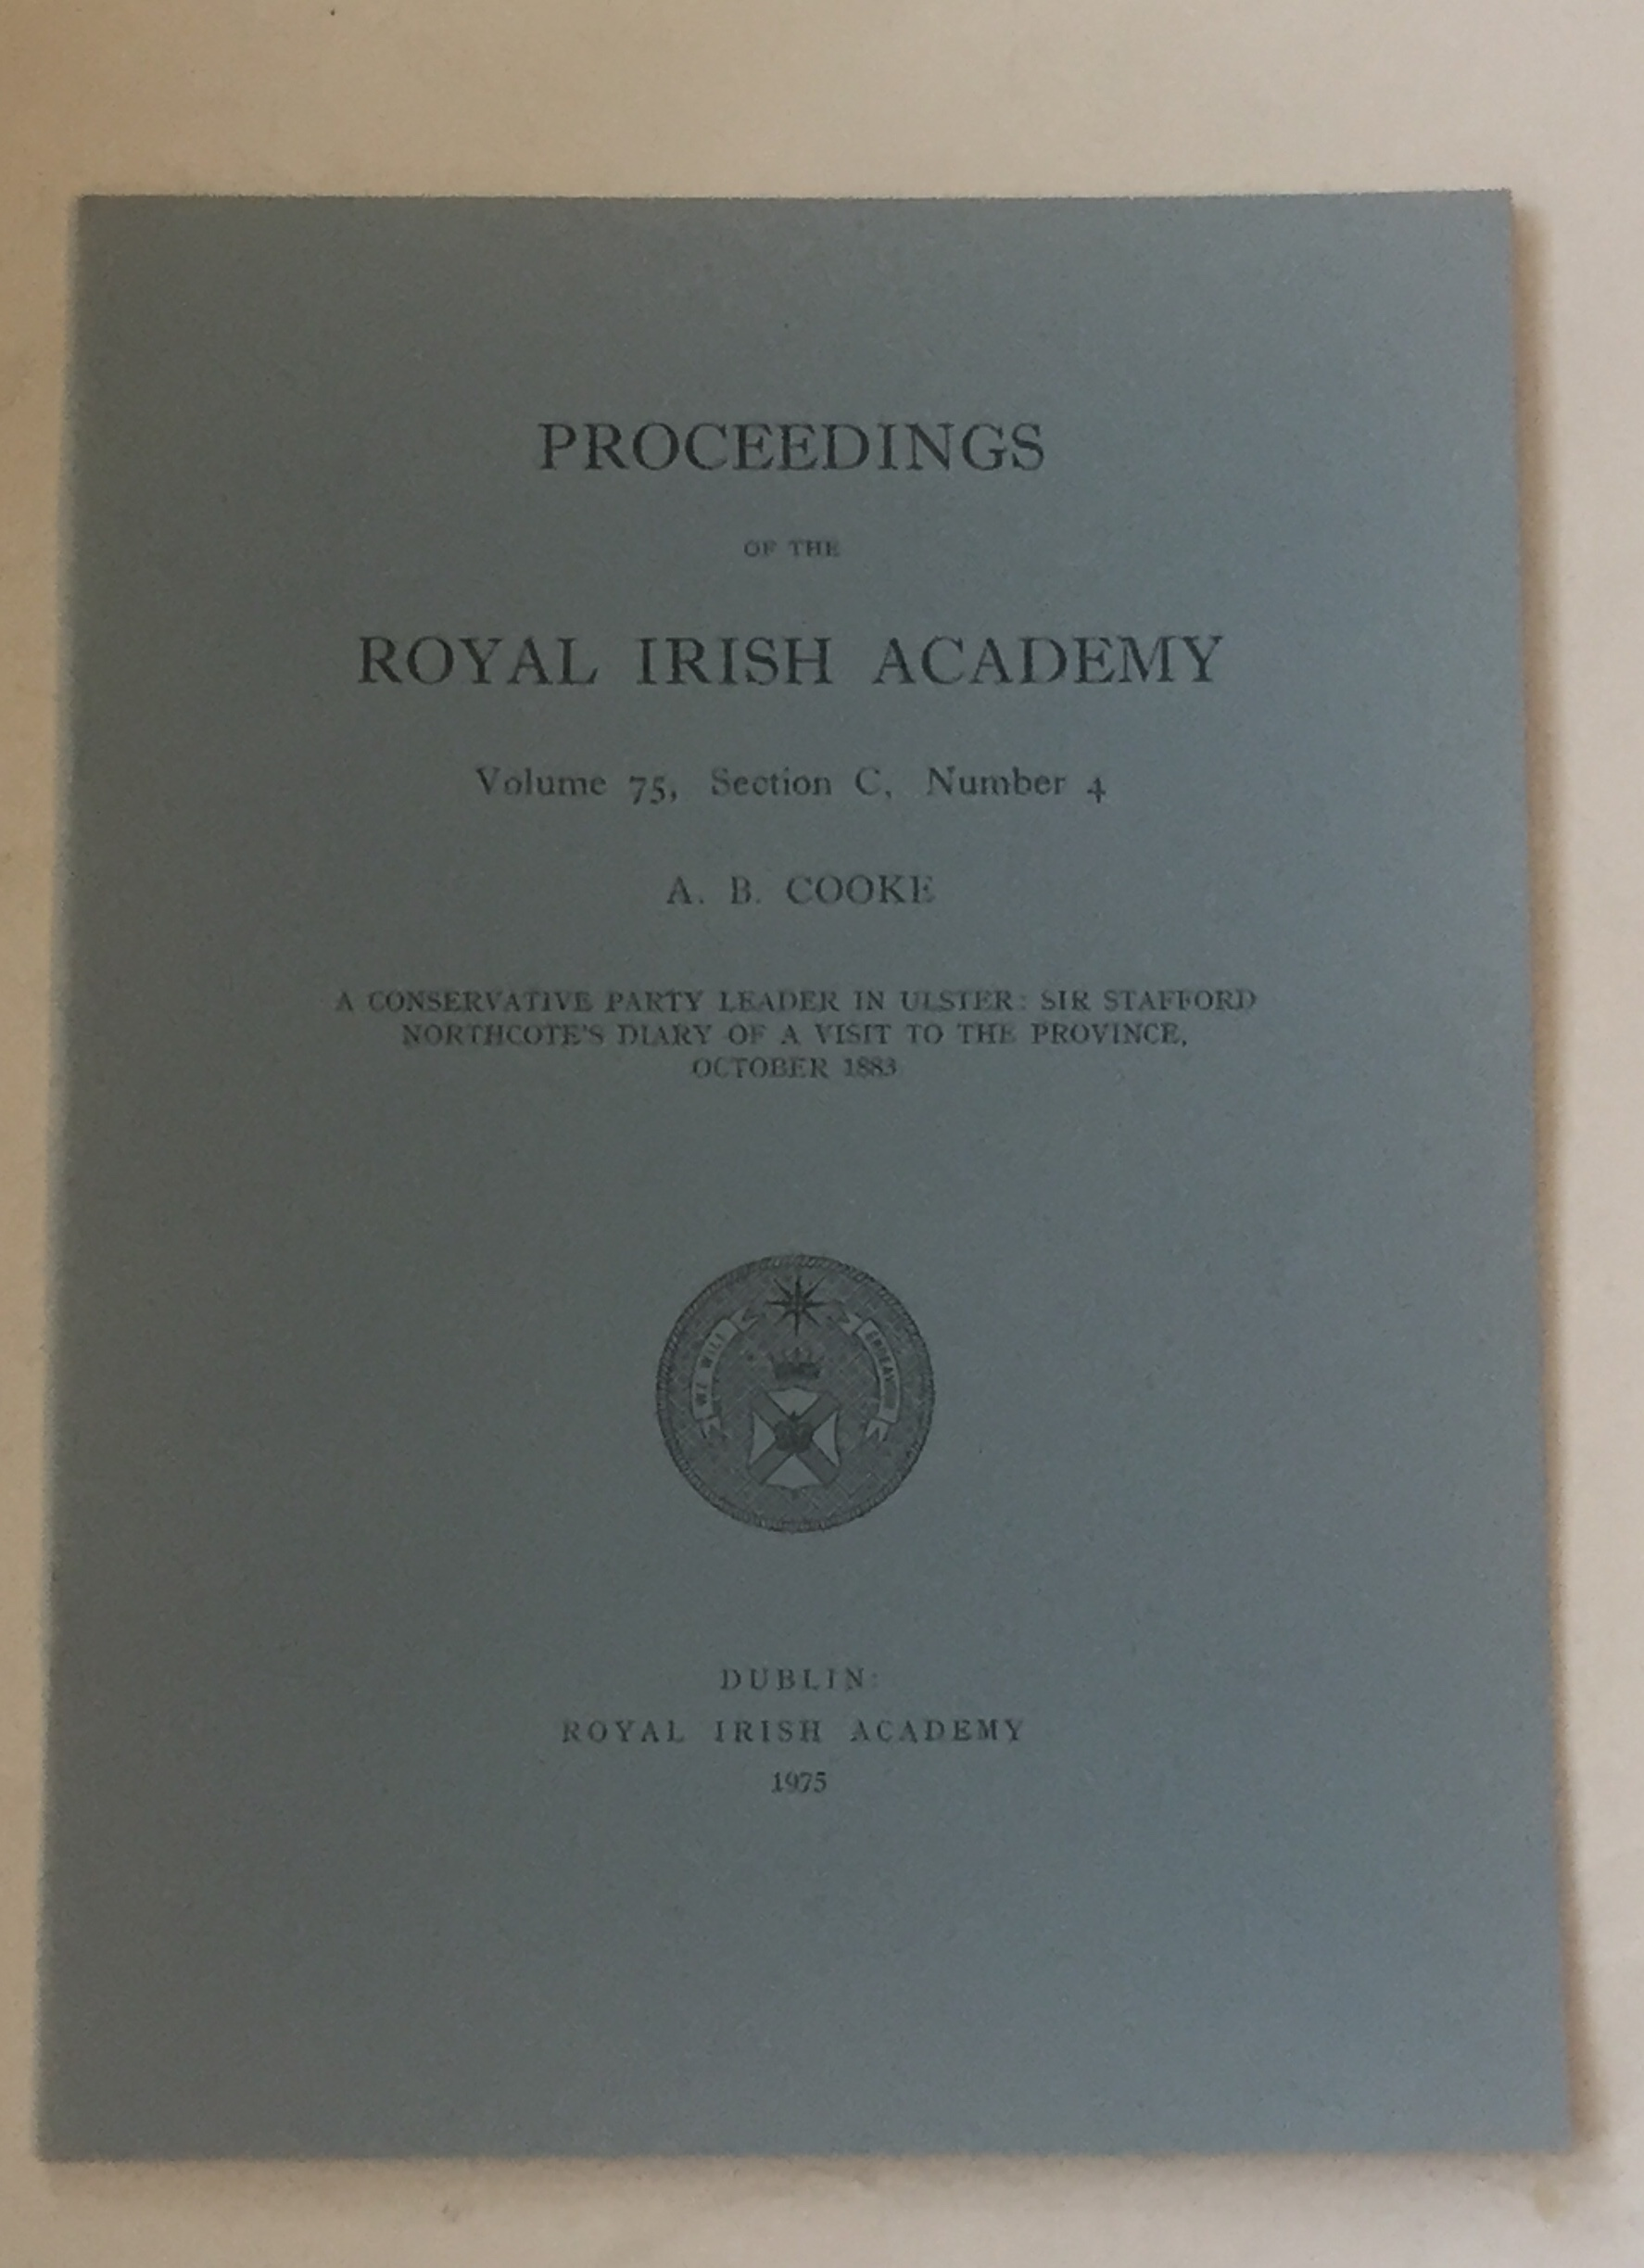 Image for A conservative party leader in ulster: Sir Stafford Northcote's diary of a visit to the Province, October 1883  :Proceedings of the Royal Irish Academy, Volume 75, Section C, No. 4